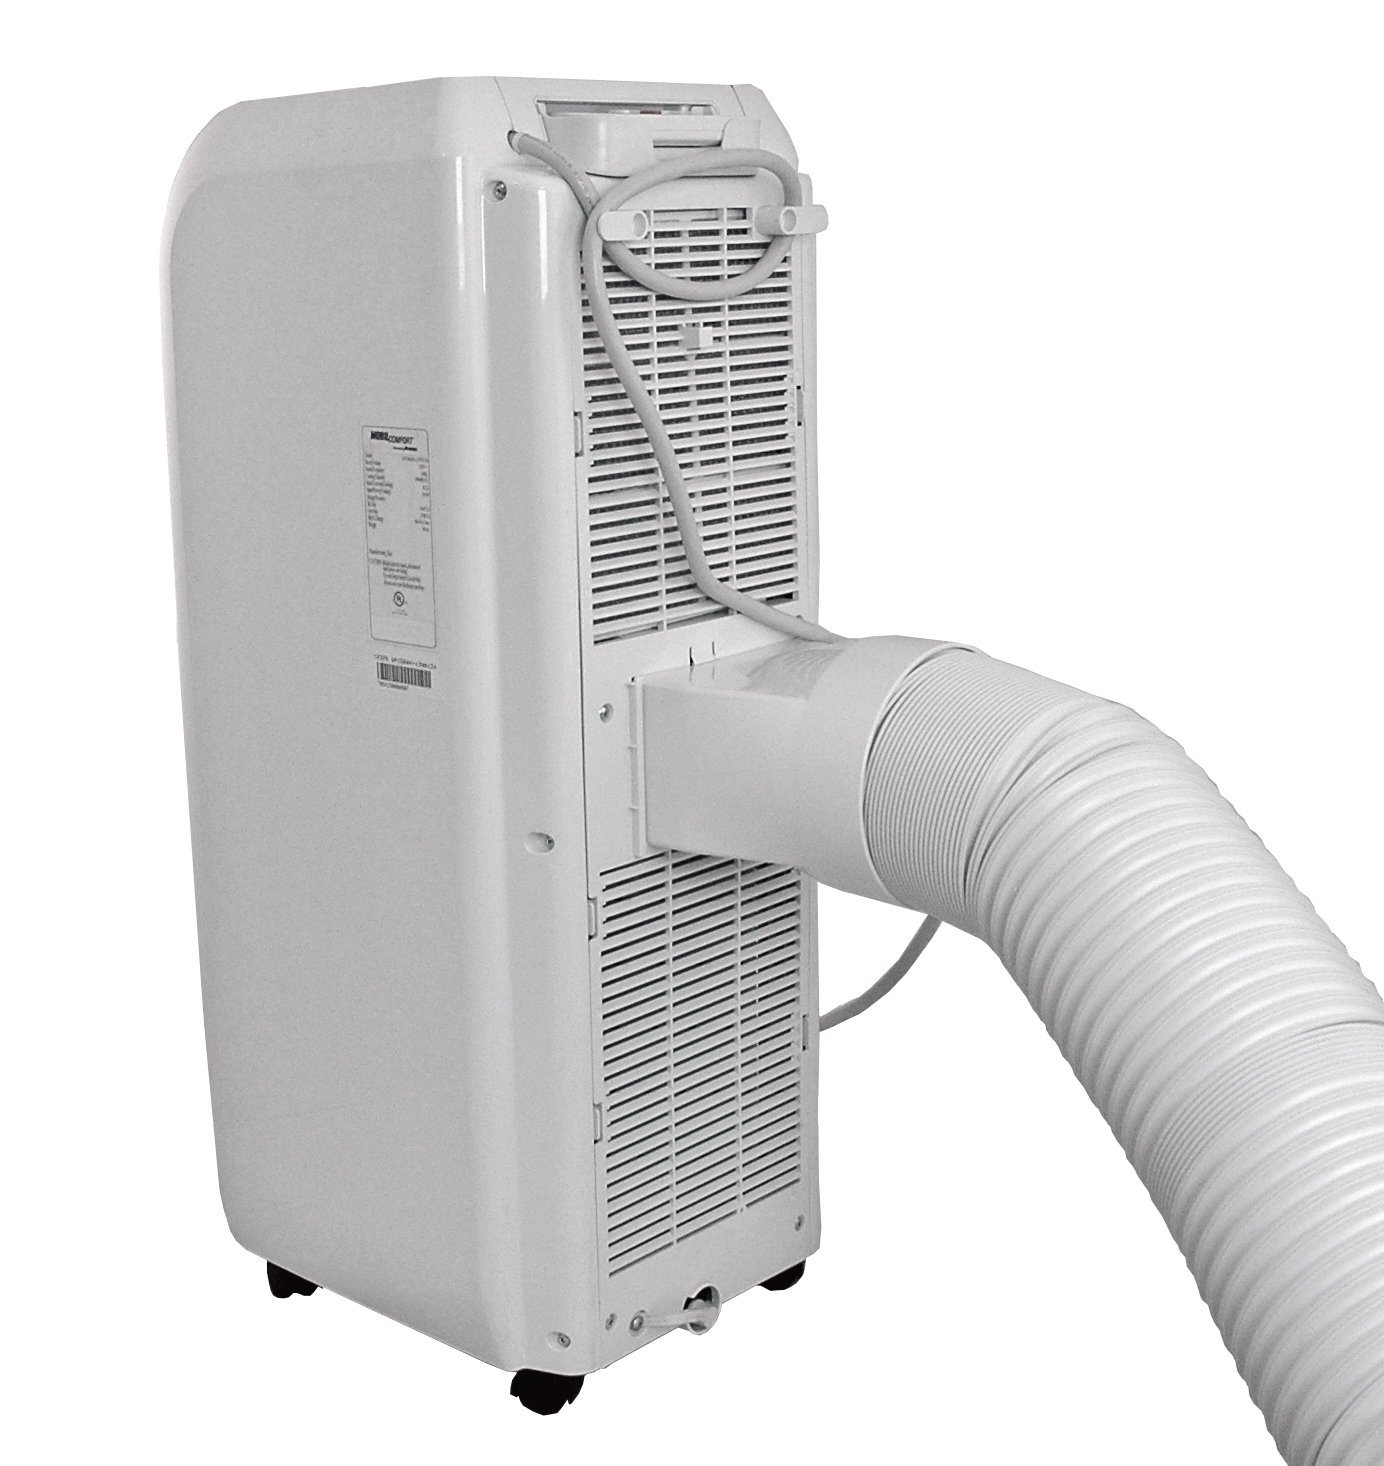 Captivating Soleus Air KY 80 8,000 BTU 3 In 1 Portable Air Conditioner, Dehumidifier  And Fan.